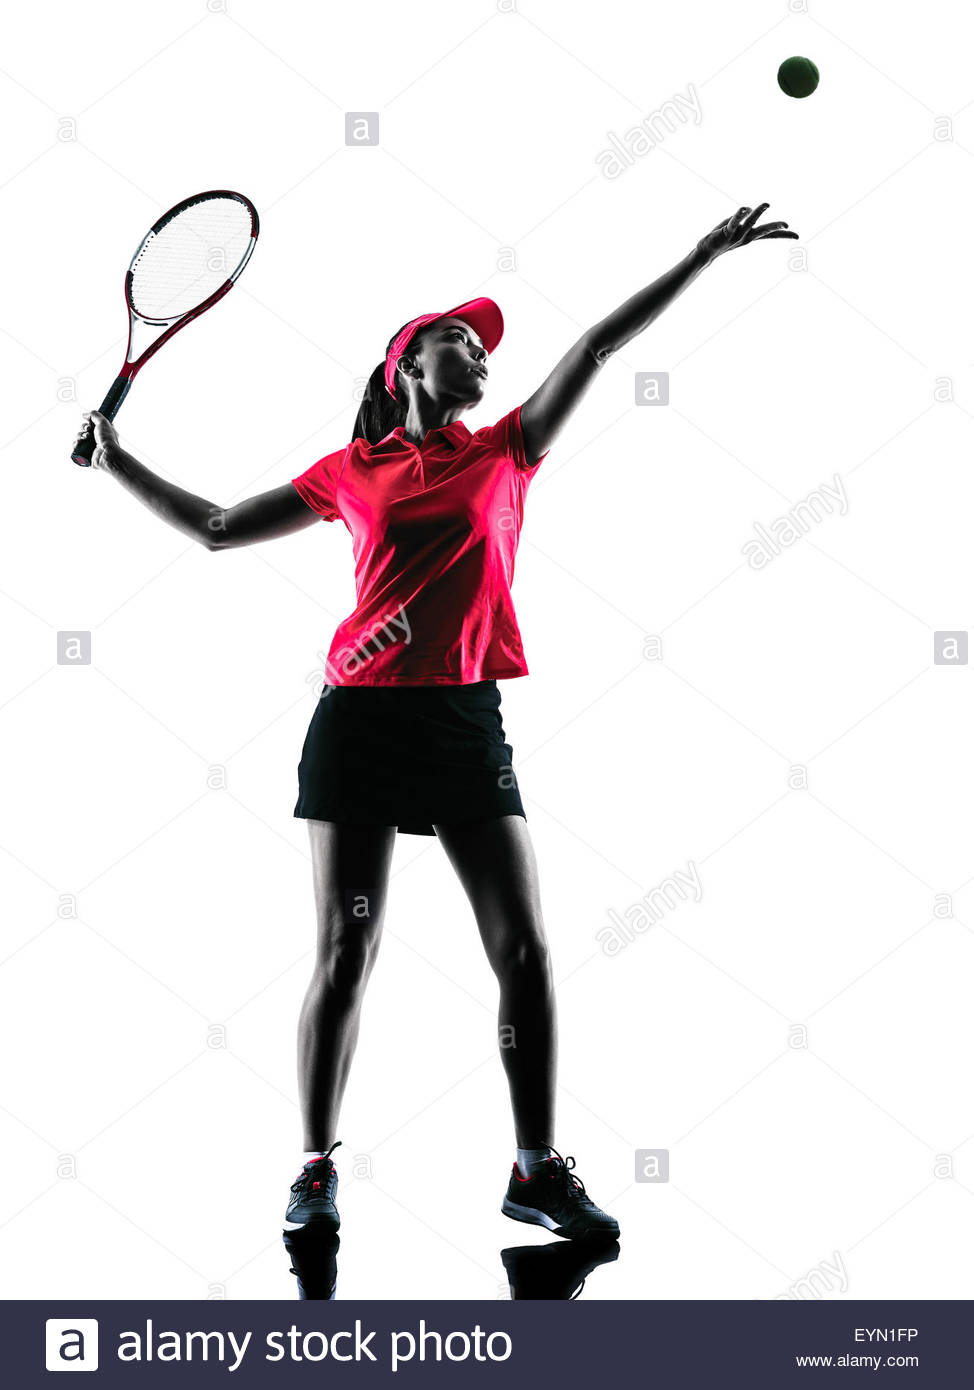 974x1390e Woman Tennis Player Sadness In Studio Silhouette Isolated